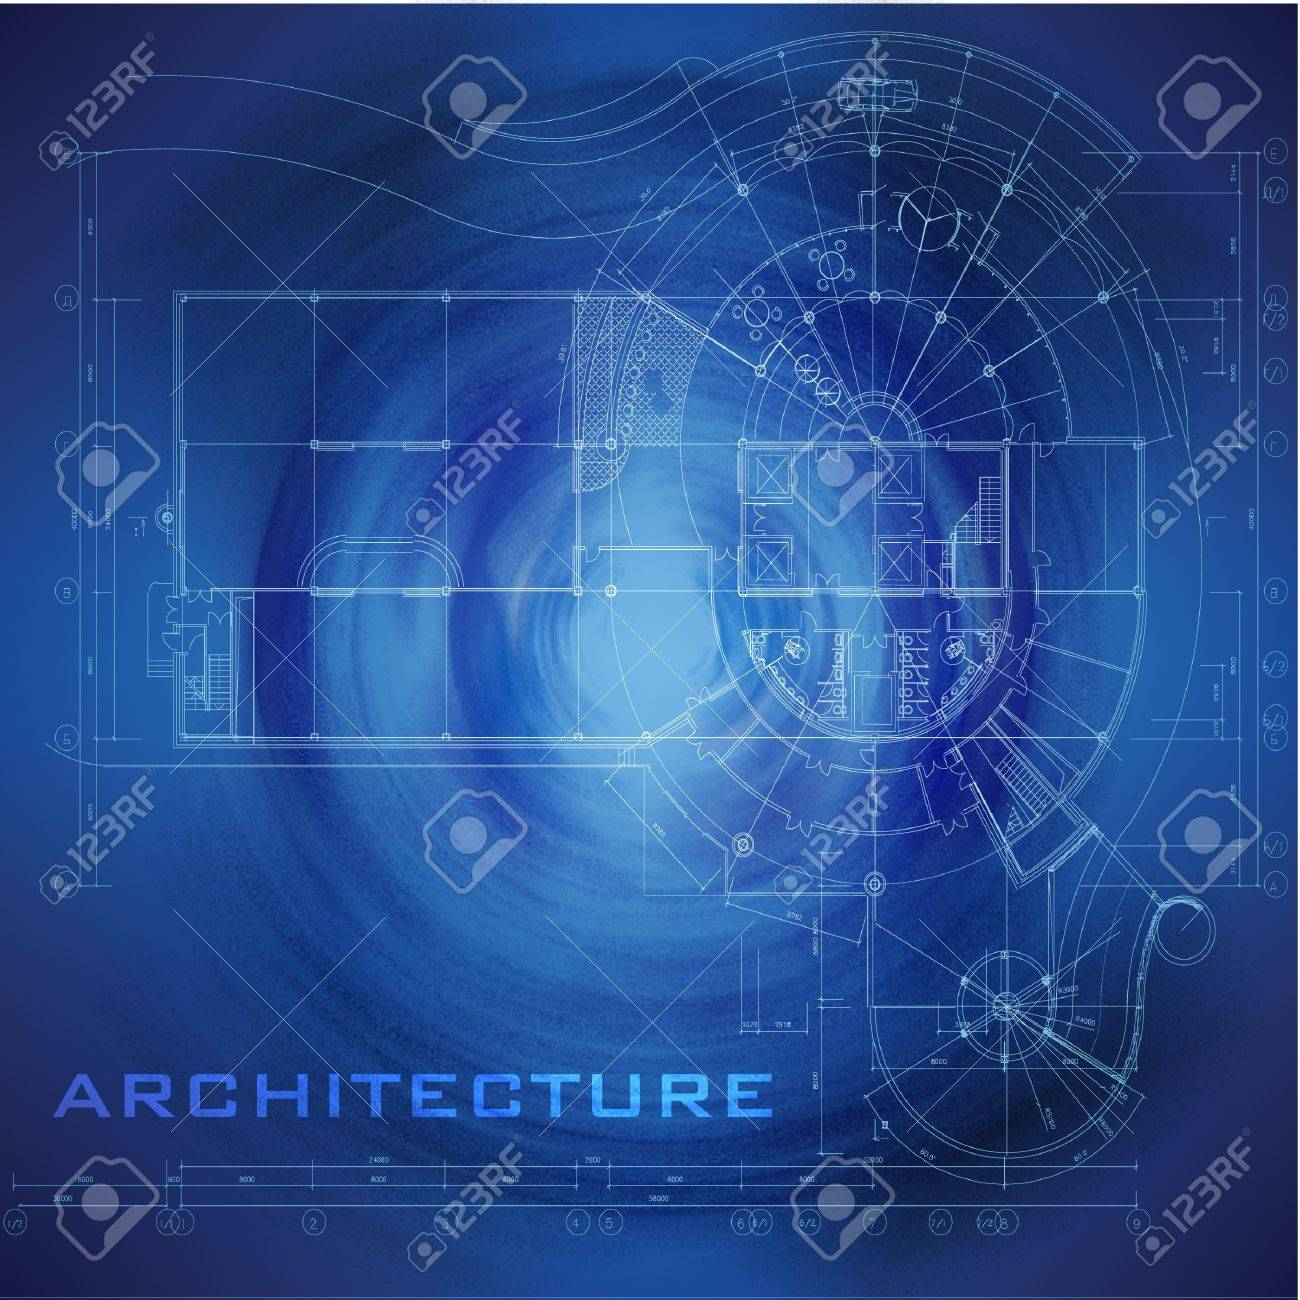 Abstract futuristic architectural design urban blueprint abstract futuristic architectural design urban blueprint architectural background part of architectural project architectural plan malvernweather Images